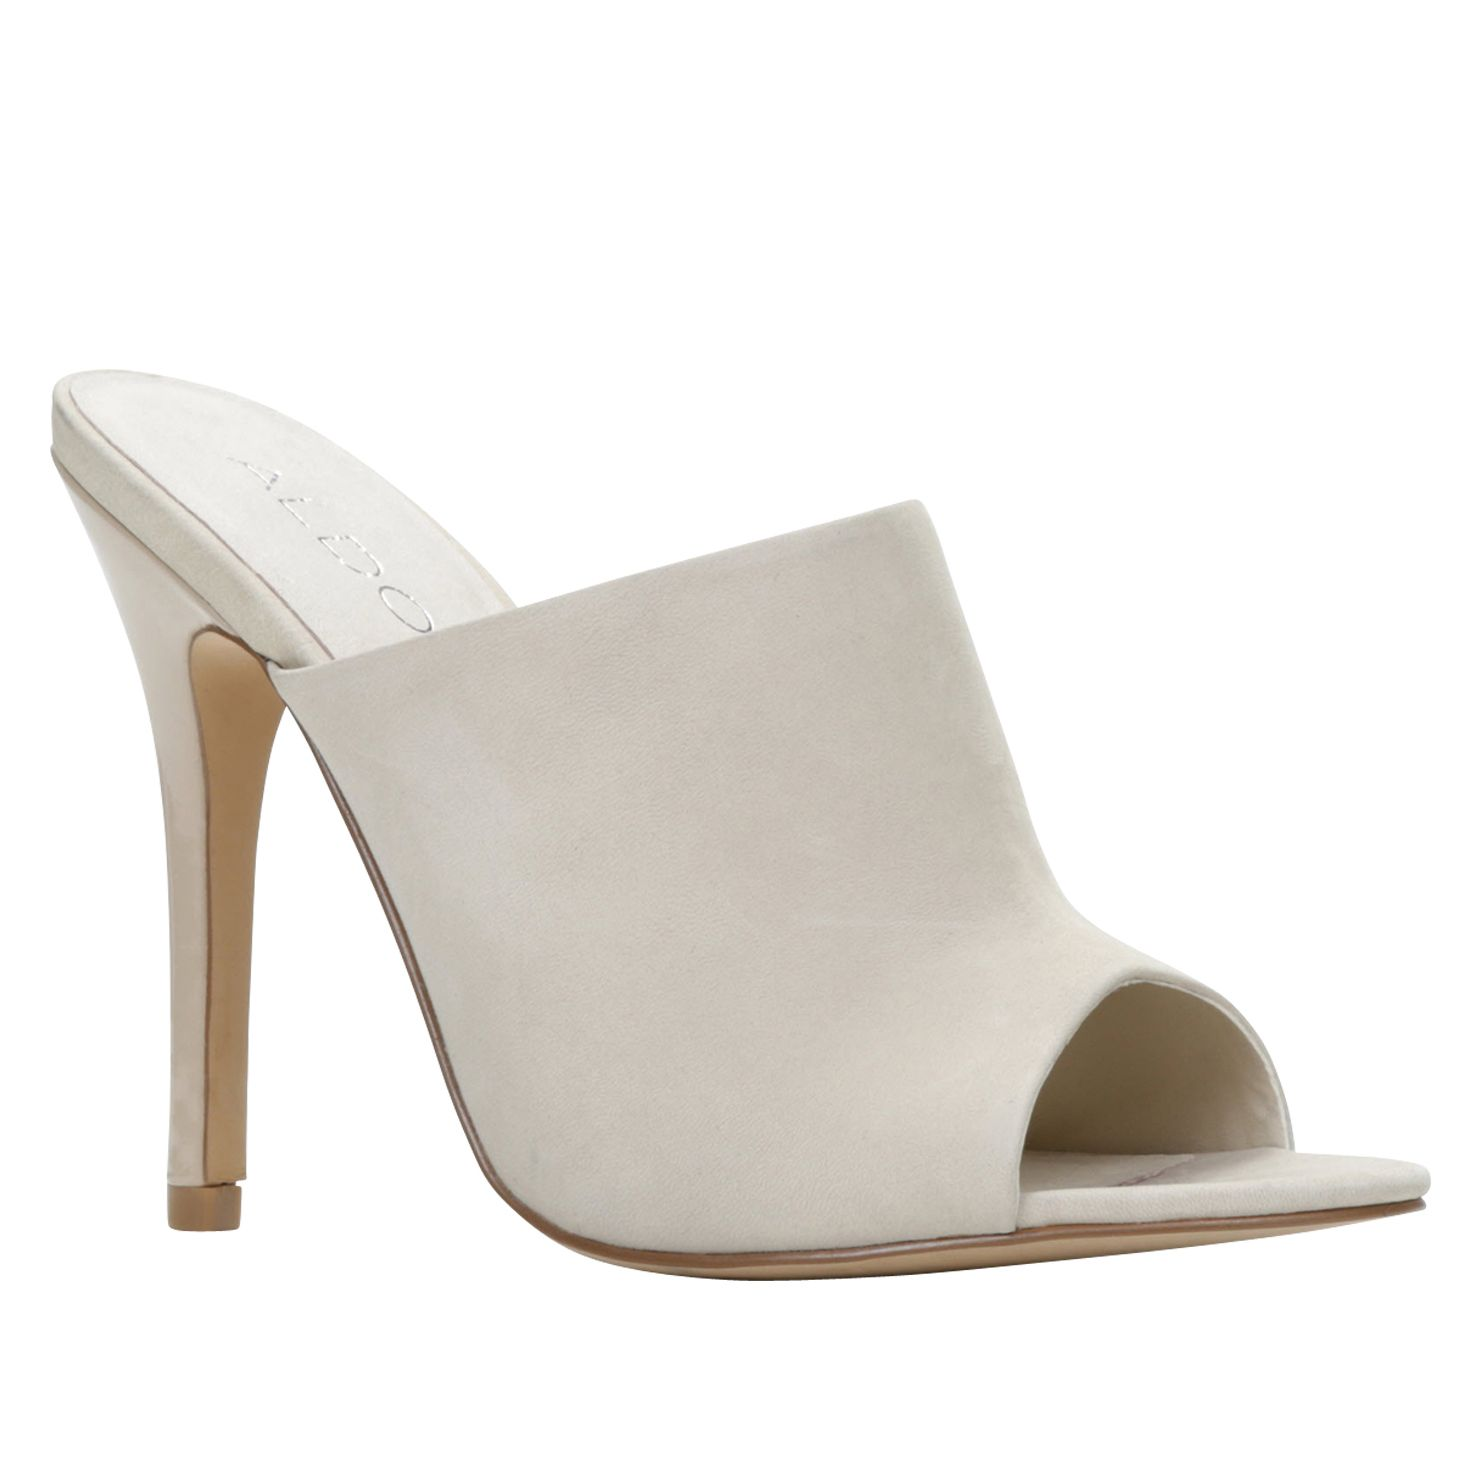 Hamaliel peep toe high heel sandals